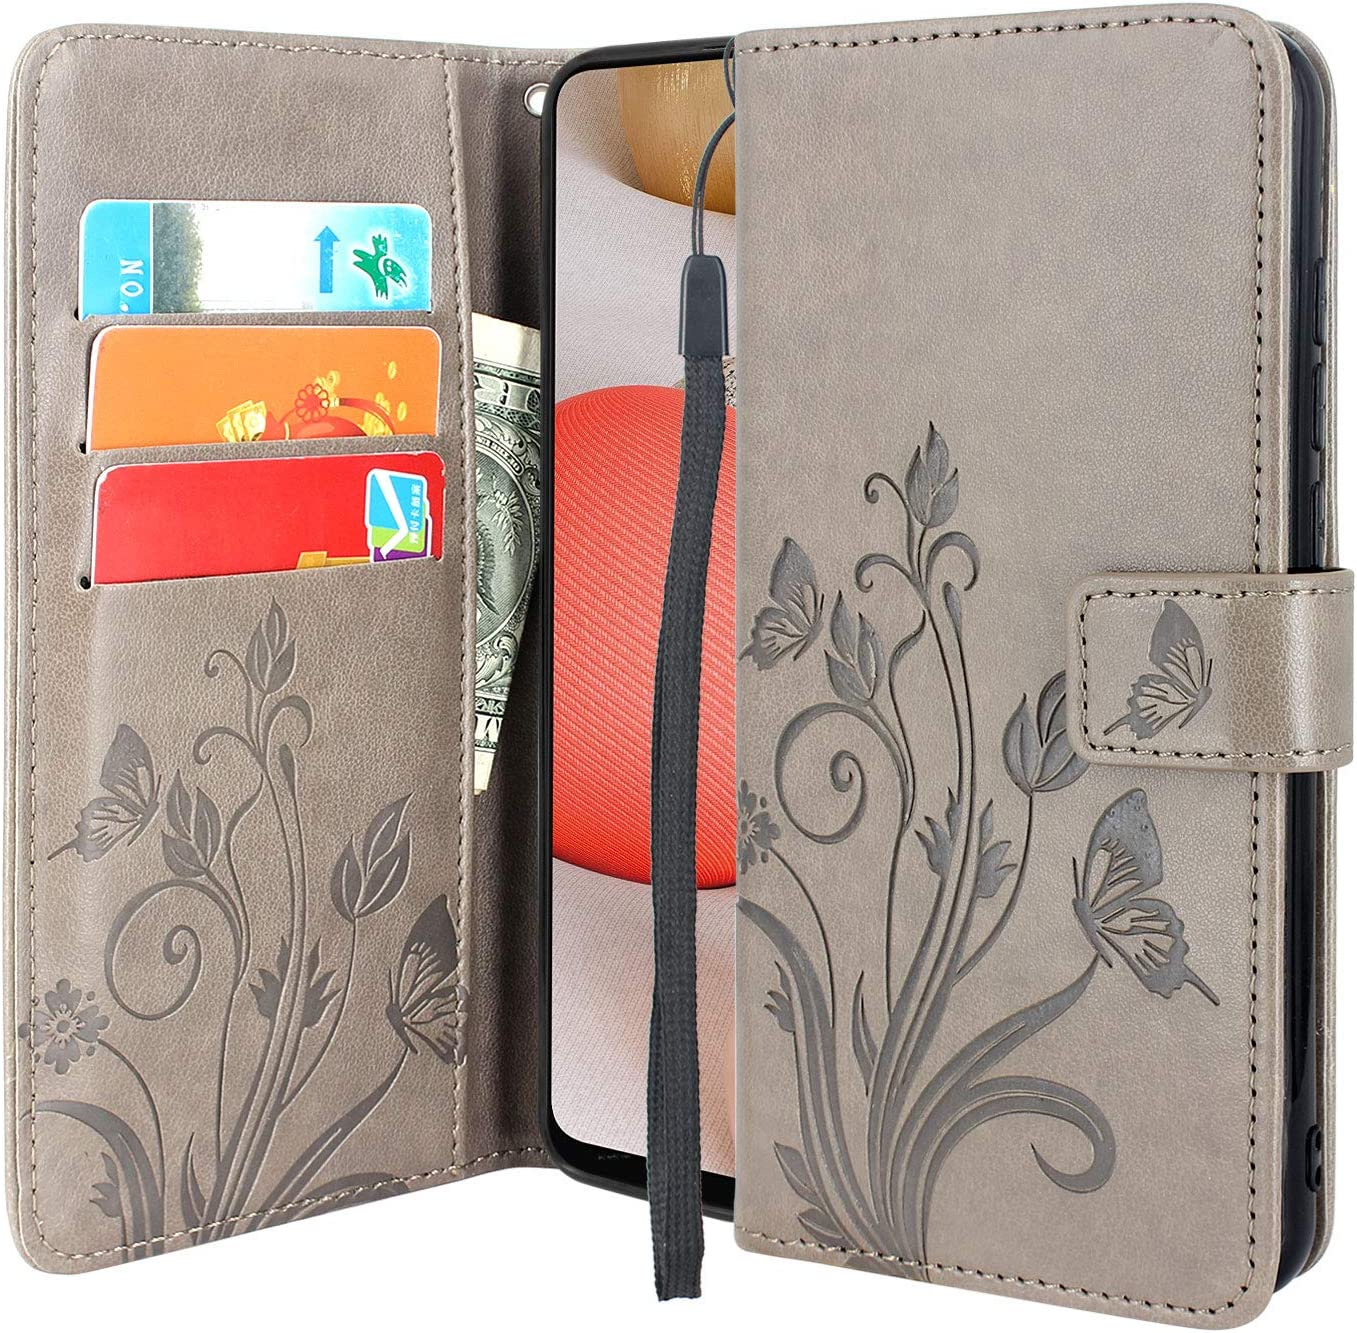 Lacass Floral Butterfly PU Leather Flip Wallet Case Cover Kickstand with Card Slots and Wrist Strap for Samsung Galaxy A42 5G (Gray)